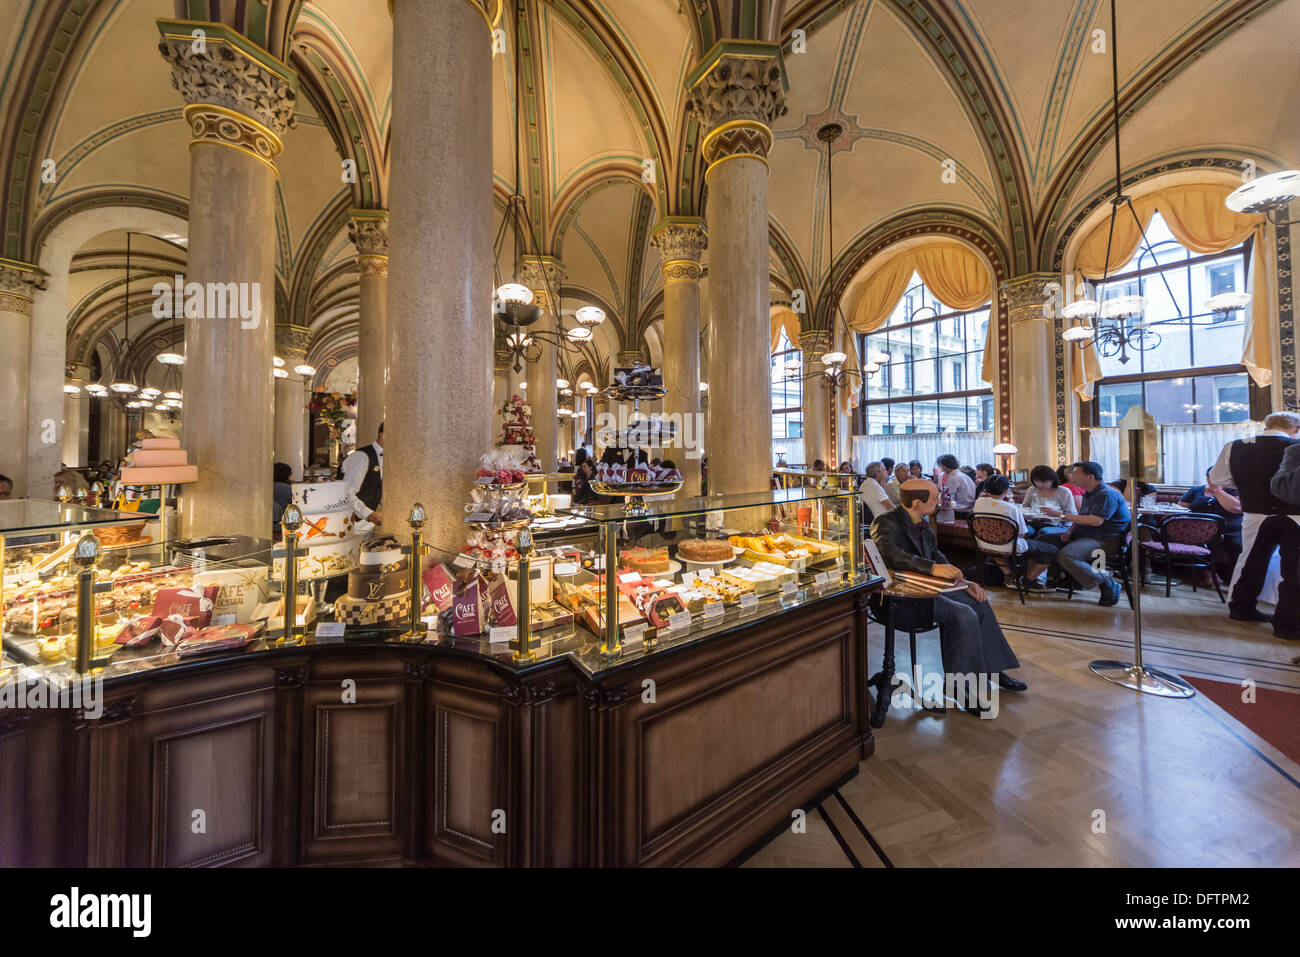 Cafe central vienna vienna state austria stock photo for Food bar vienna